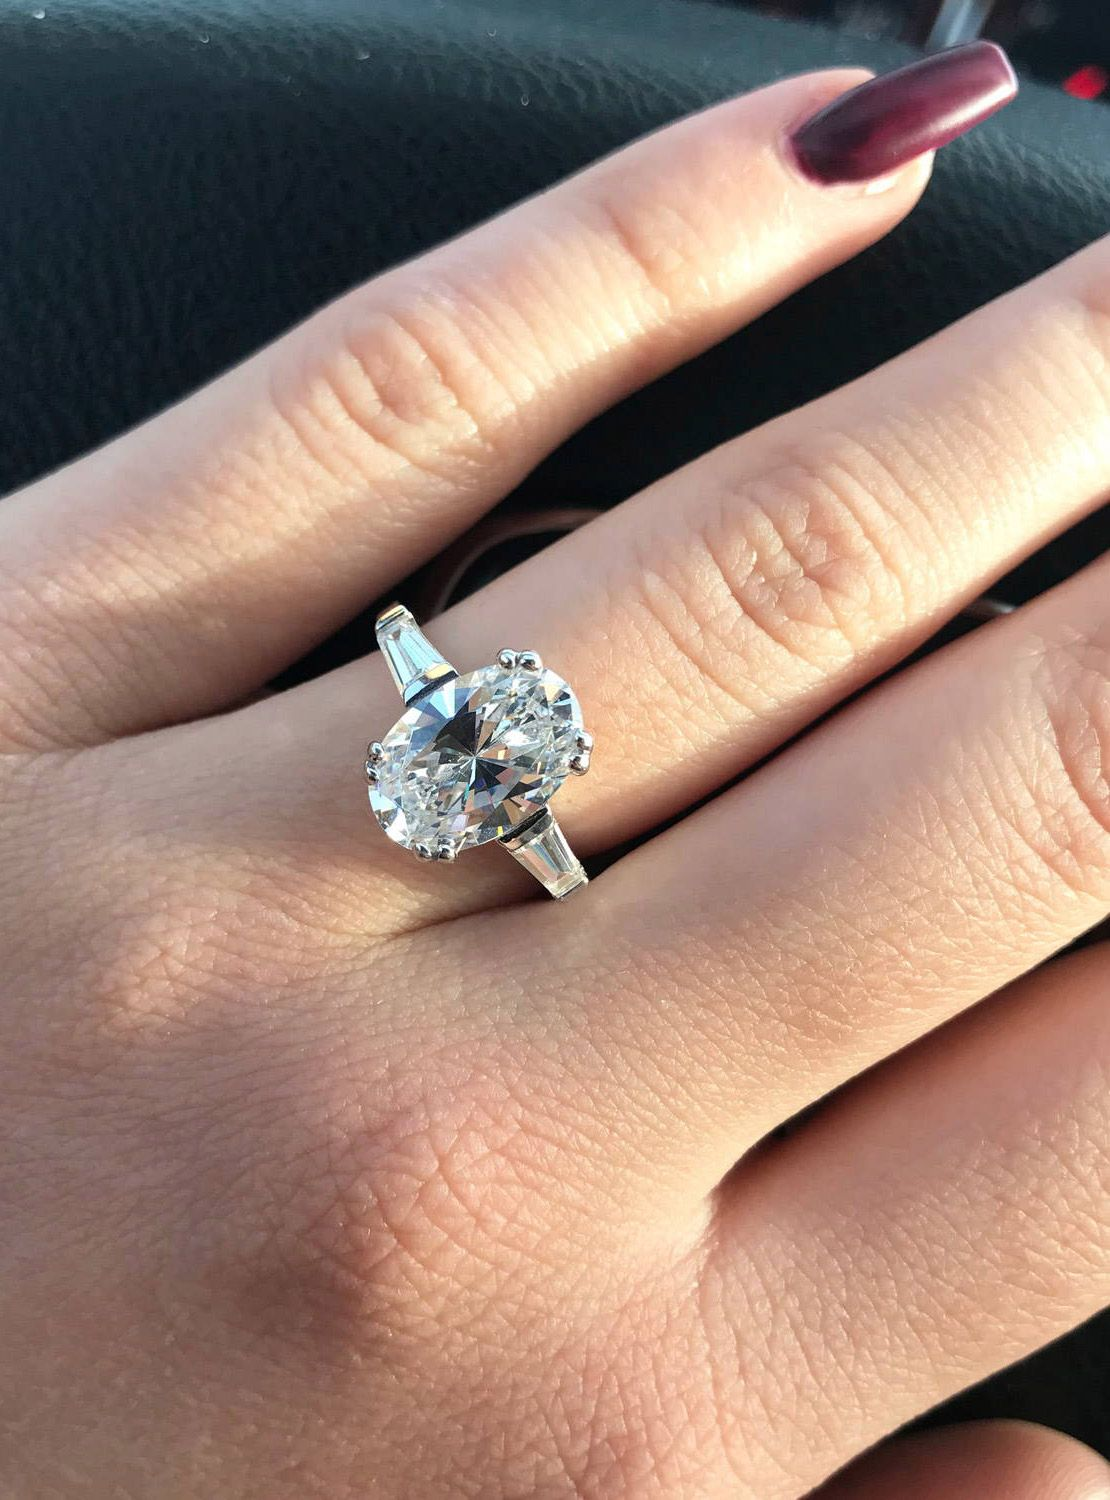 How much do you love this glamorous 3stone oval